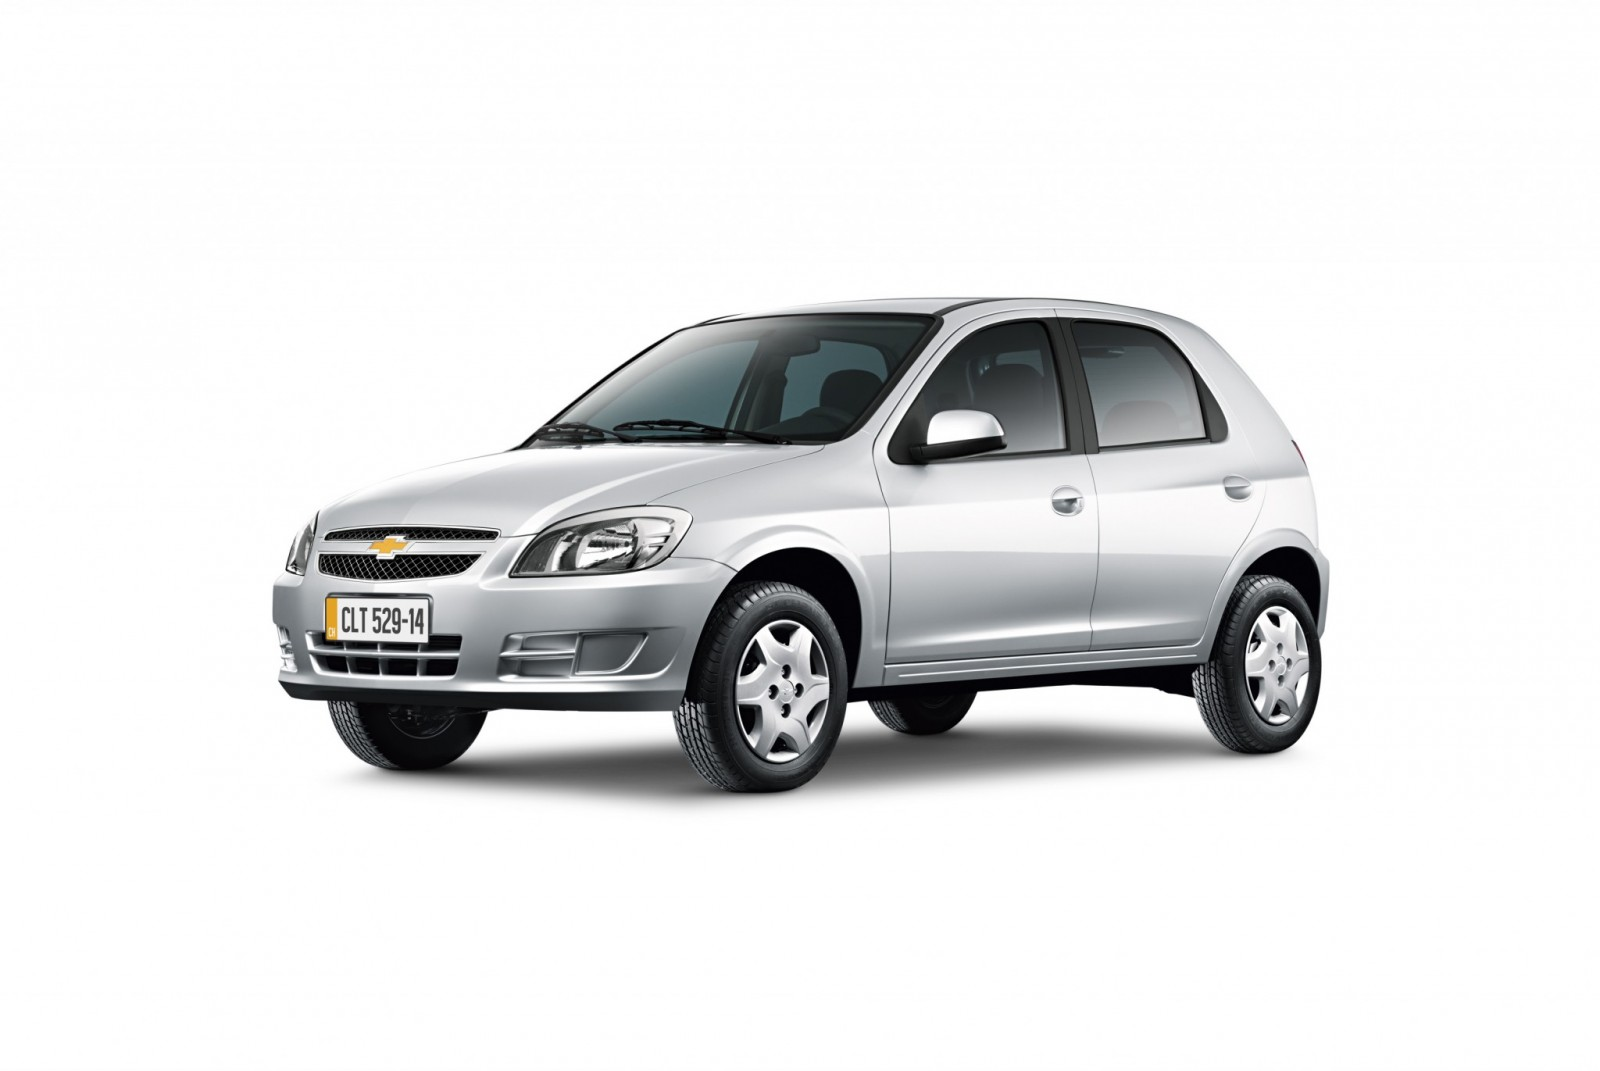 GM-Brazil-2015-Chevrolet-Celta-001.jpg